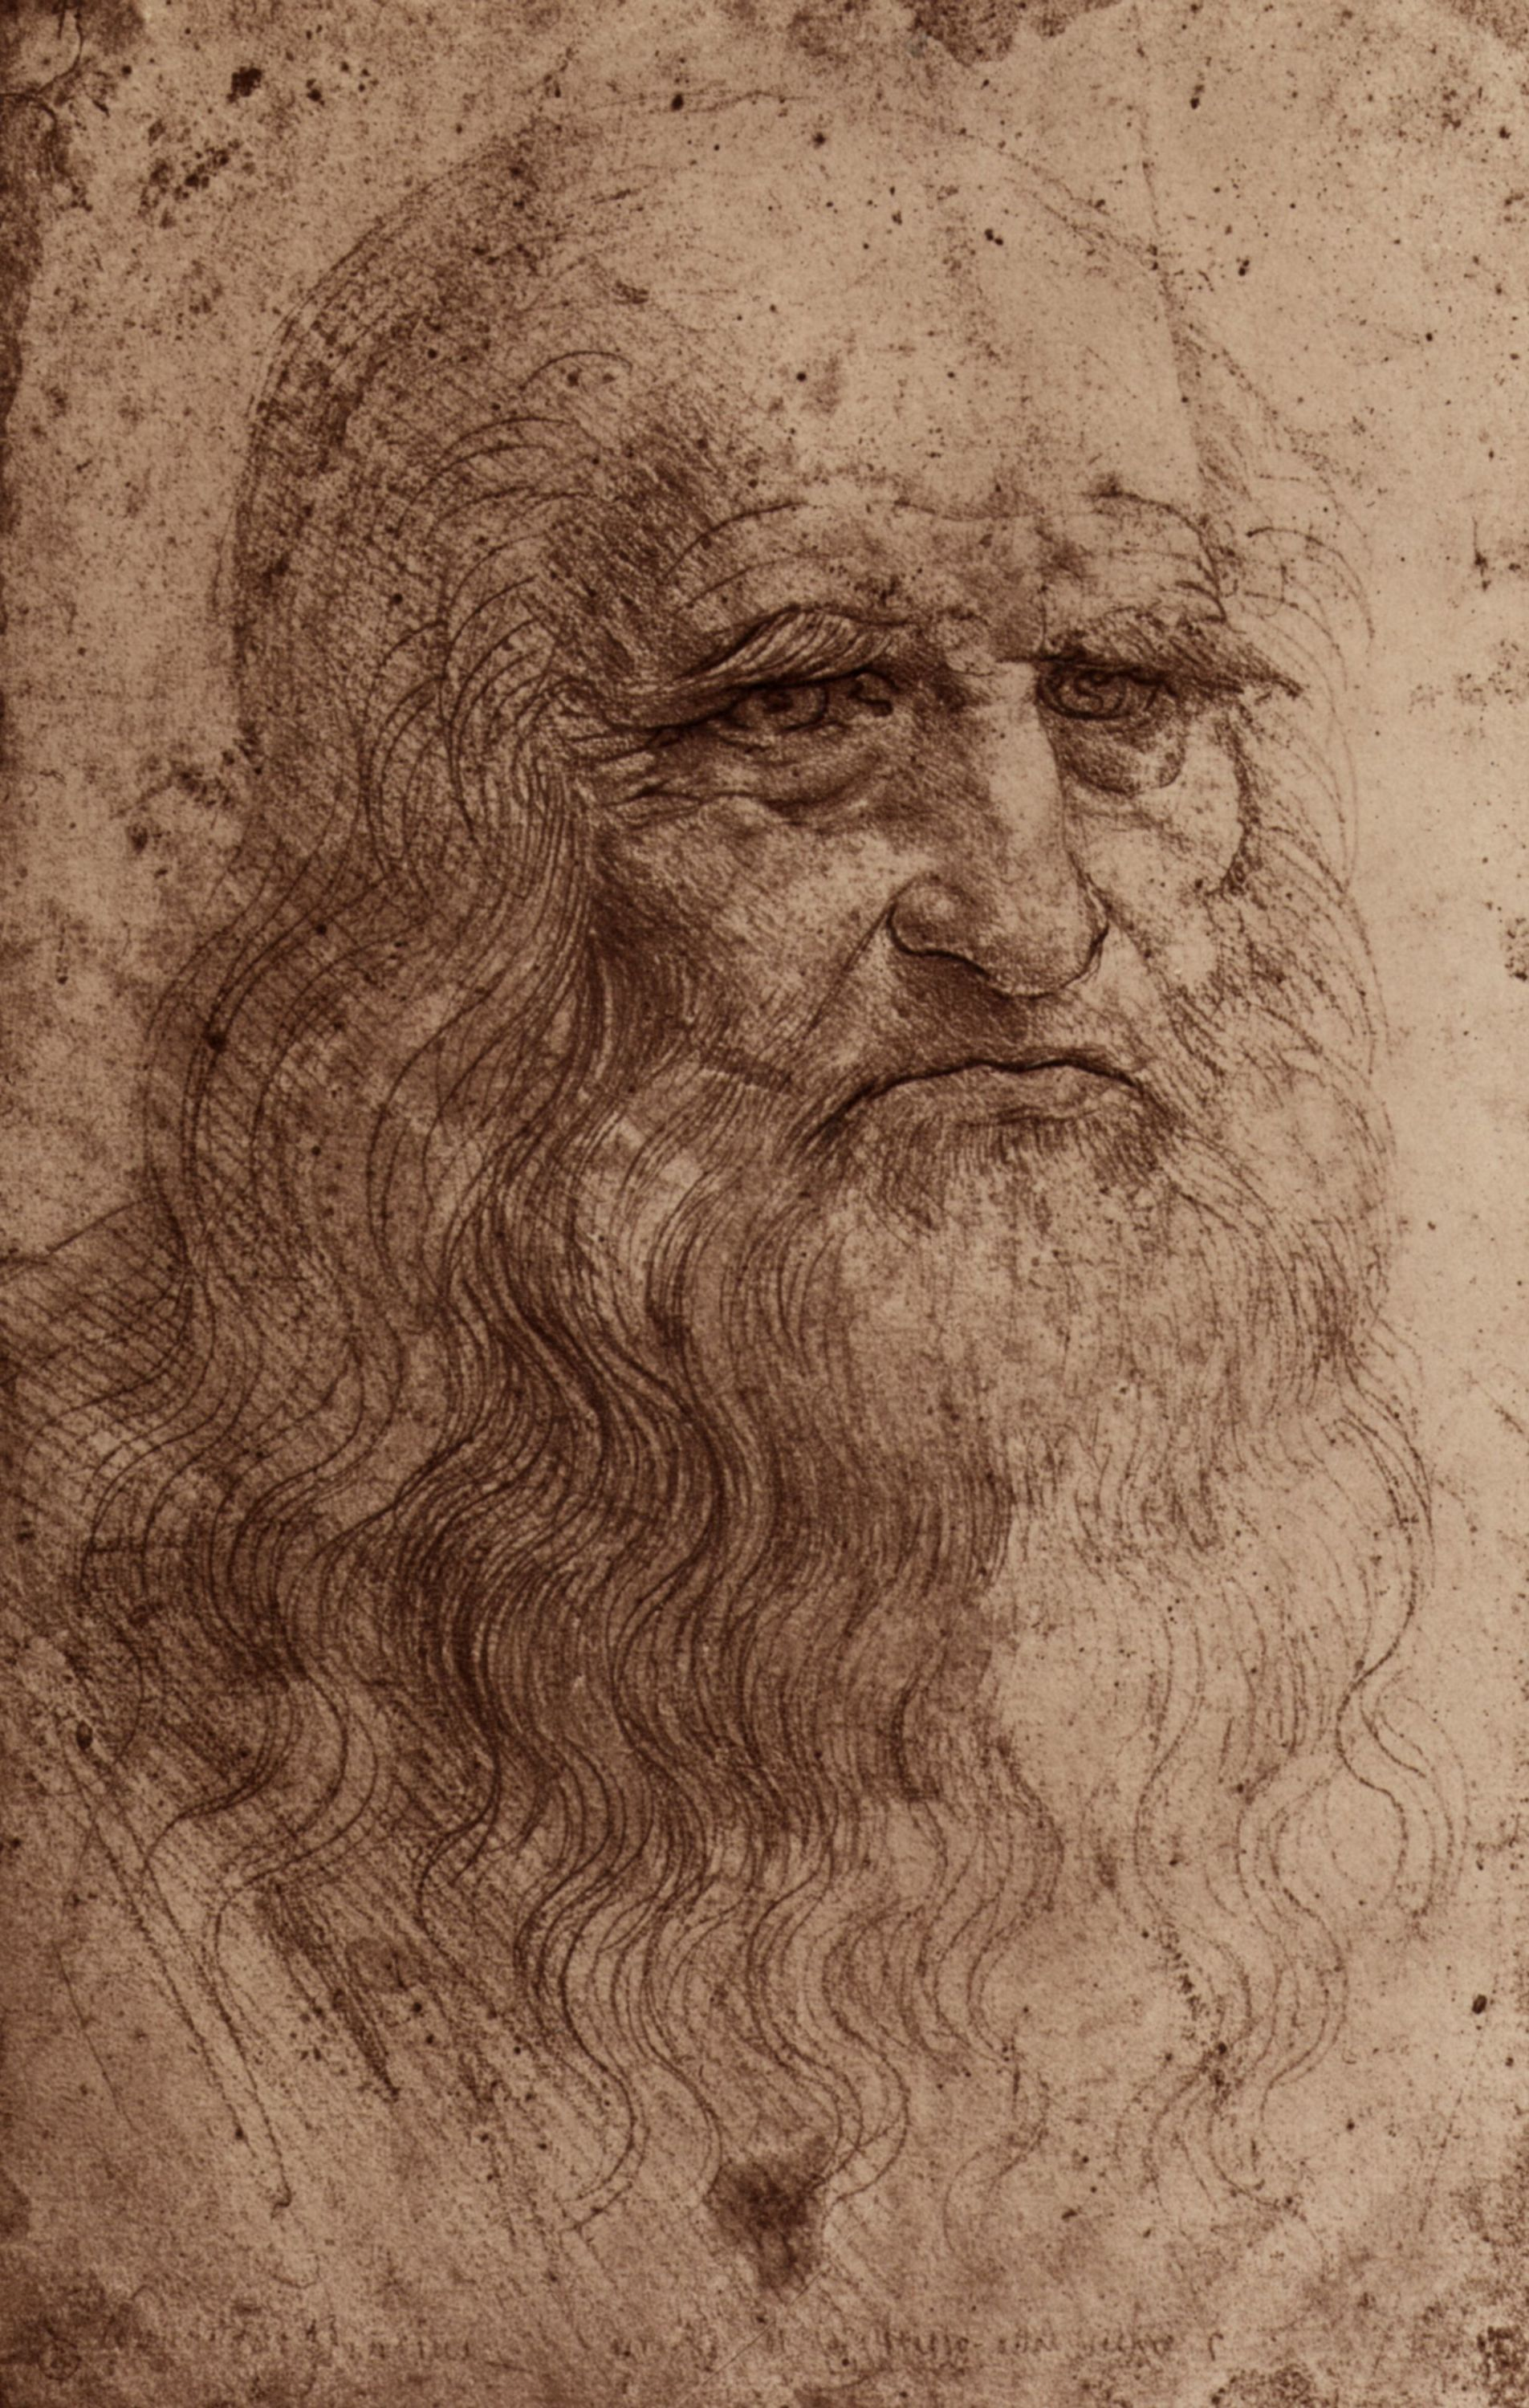 rennasaince leonardo de vinci Leonardo da vinci (1452-1519): biography of italian renaissance painter, best-known for mona lisa portrait, last supper fresco, vitruvian man drawing.